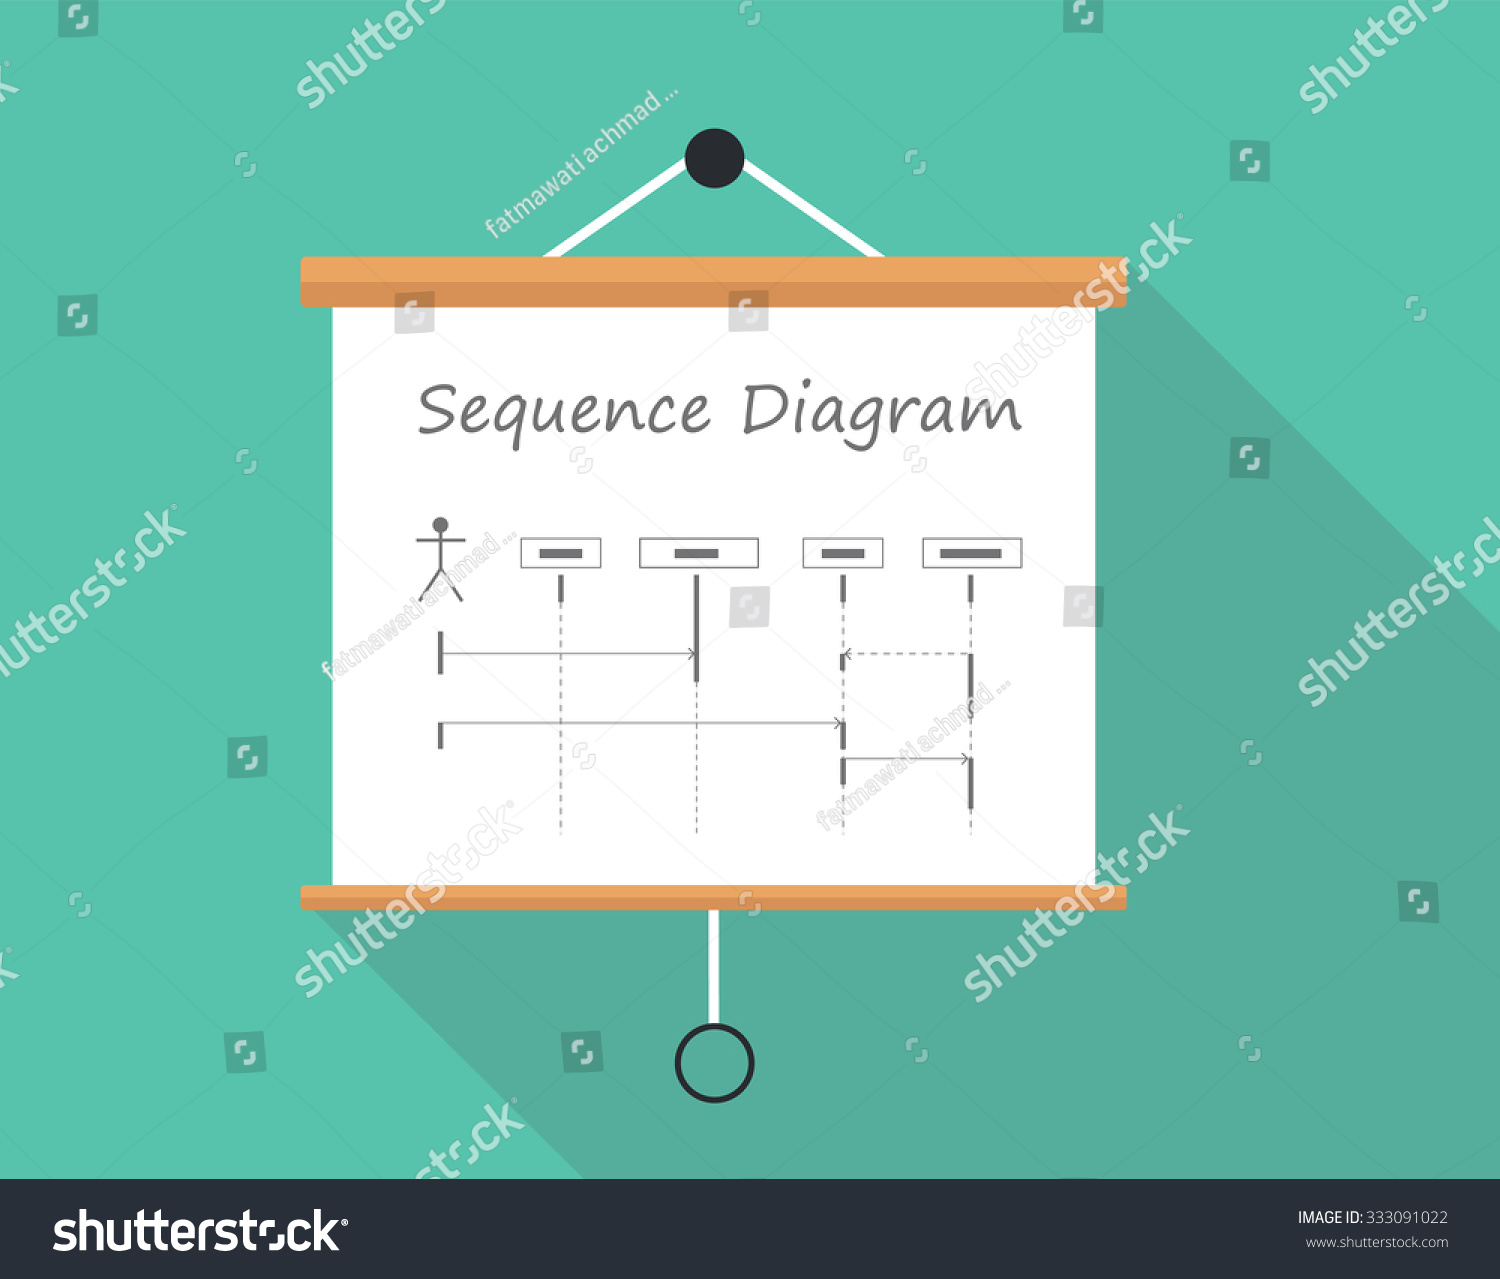 Uml Unified Modelling Language Sequence Diagram Stock Vector HD ...